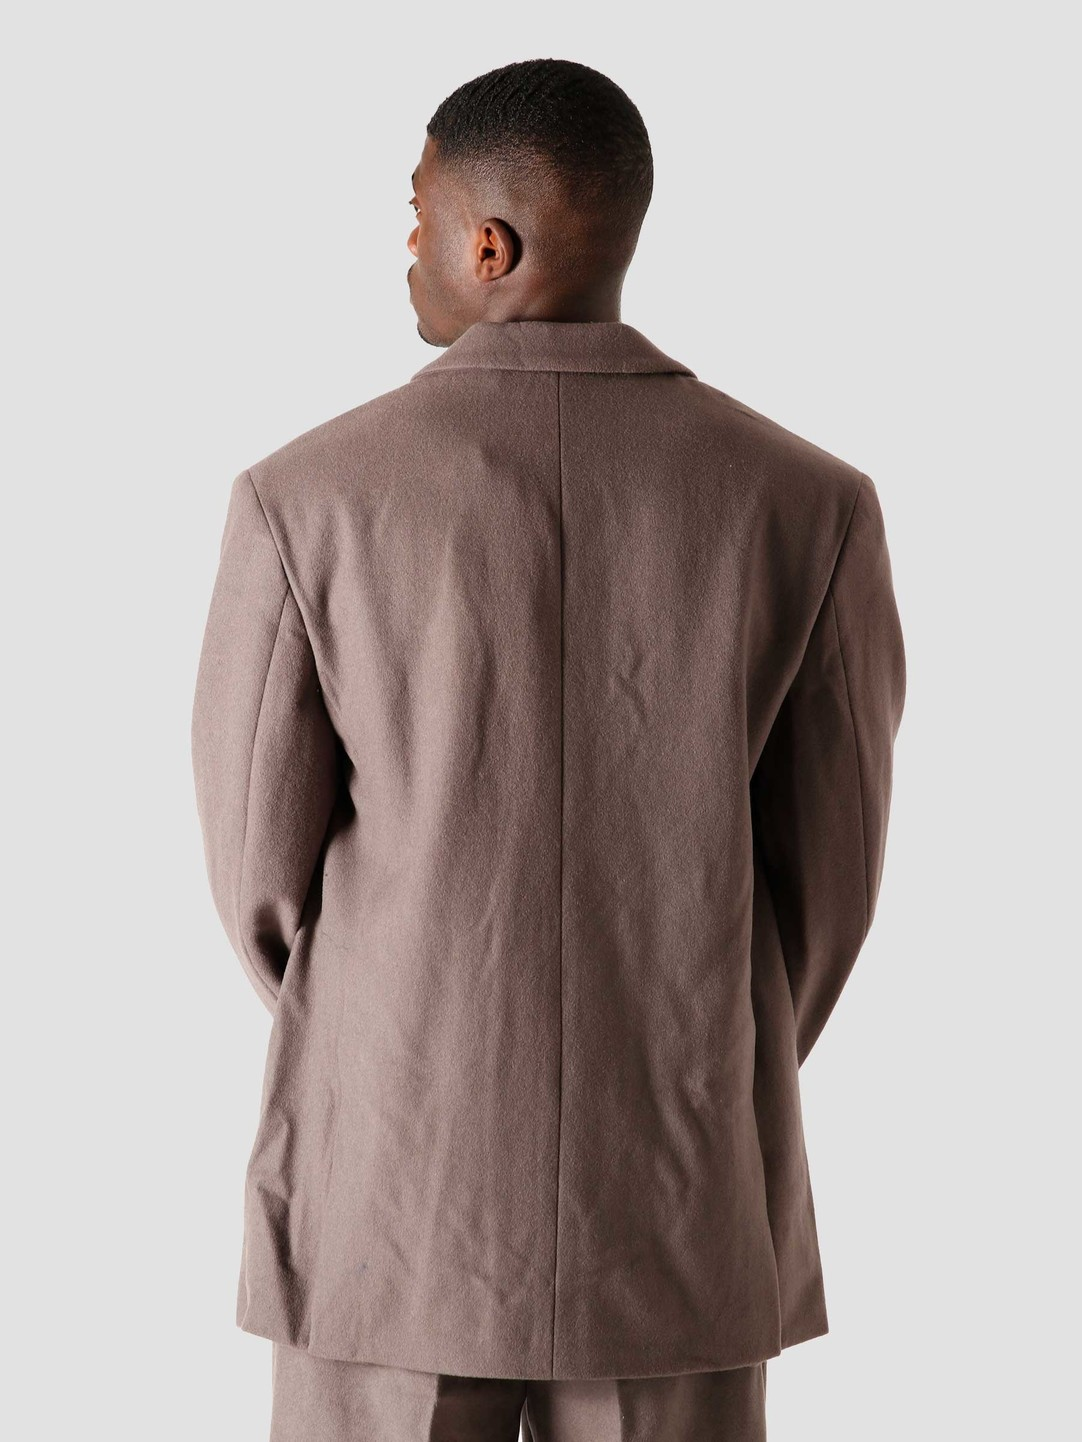 Daily Paper Daily Paper Eheck Jacket Grey 2021152